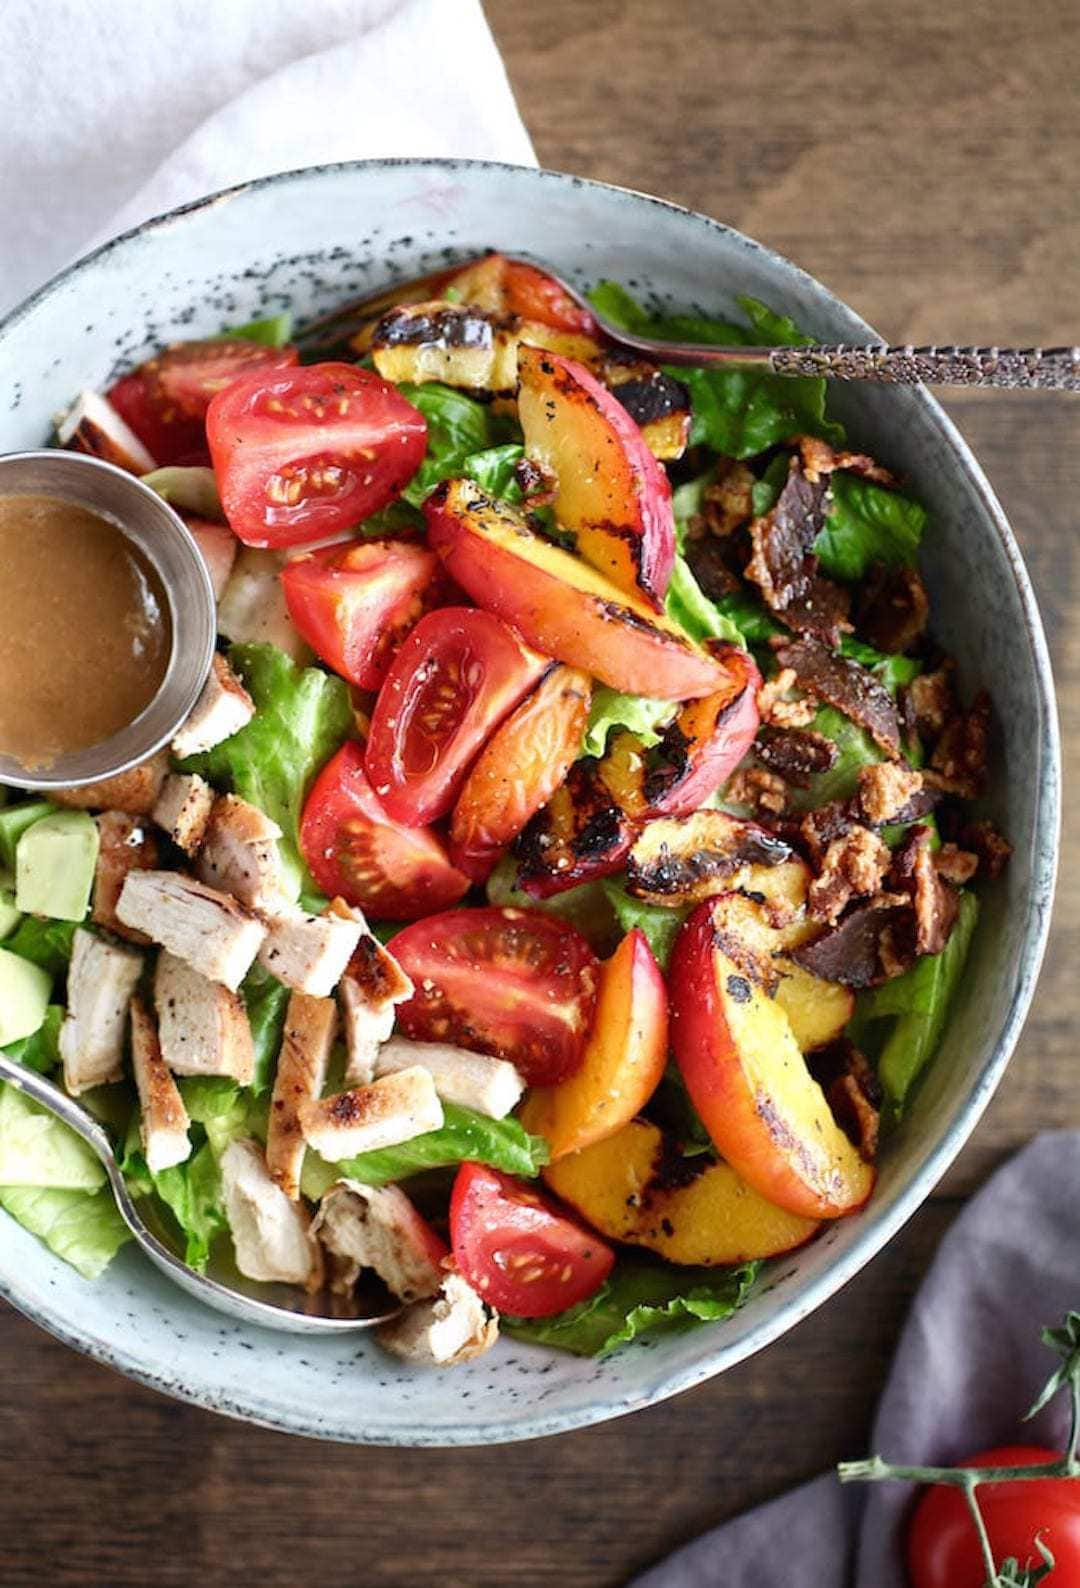 large bowl of salad with grilled chicken and nectarine